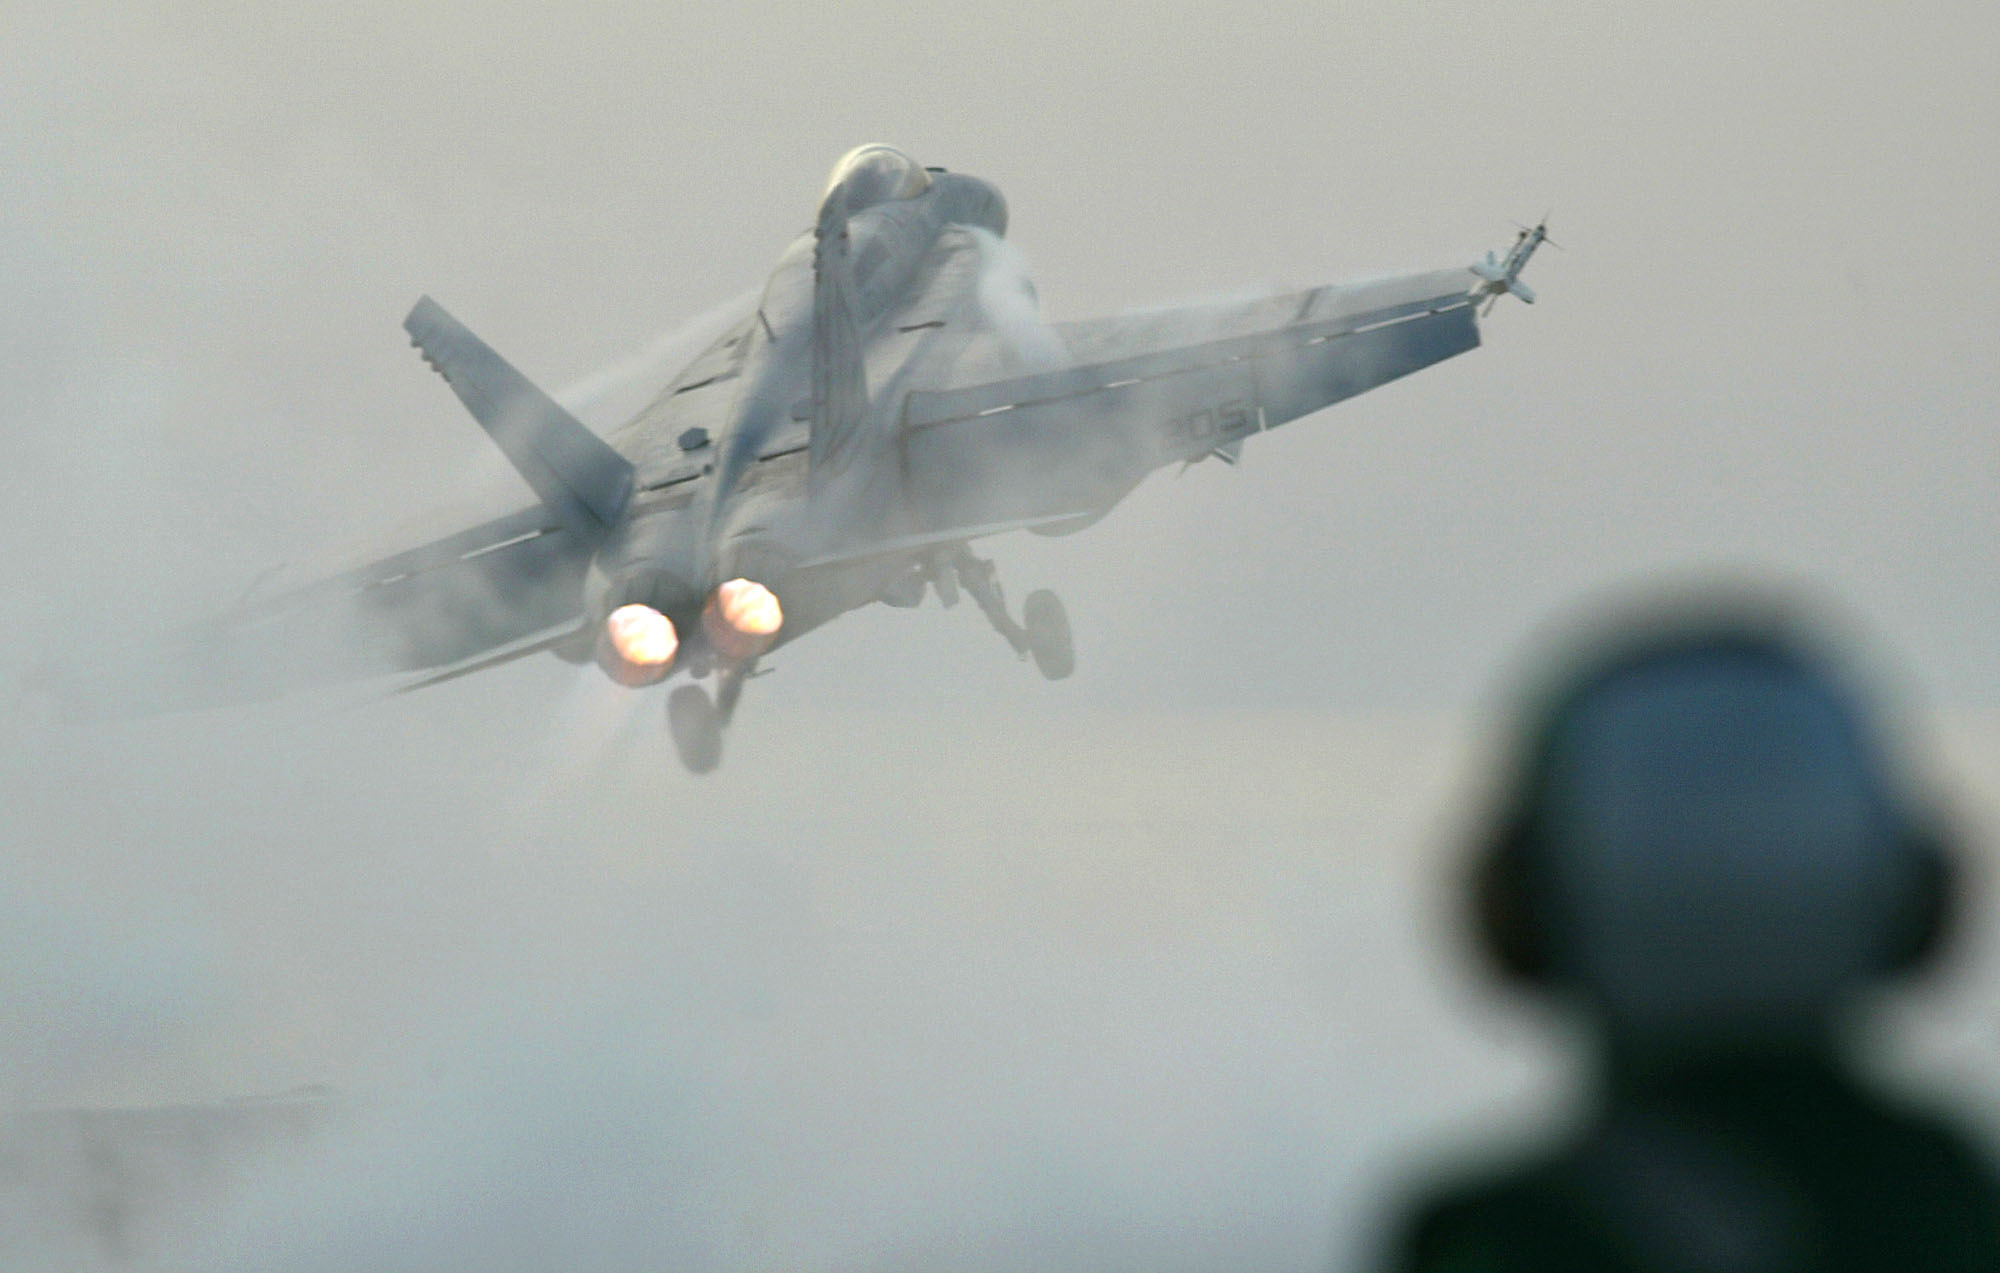 Navy jet crashes in California, but pilot ejects safely